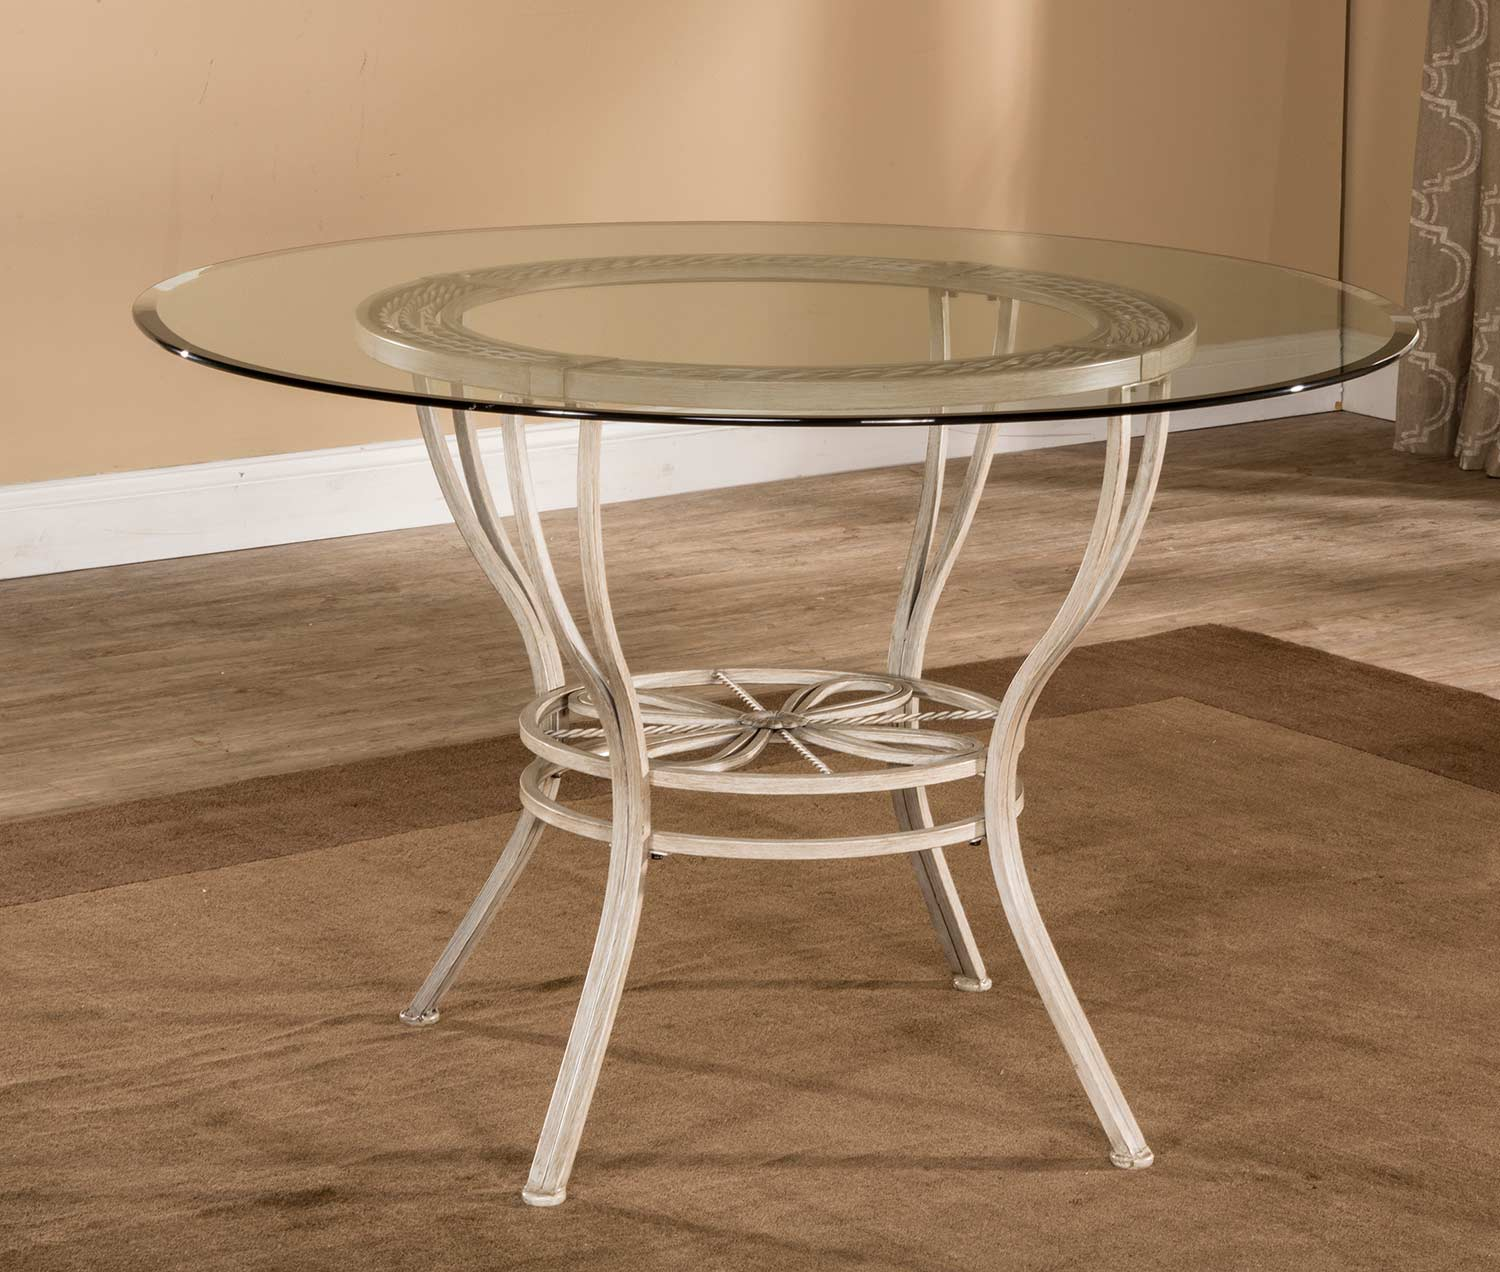 Hillsdale Napier Round Dining Table - Aged Ivory